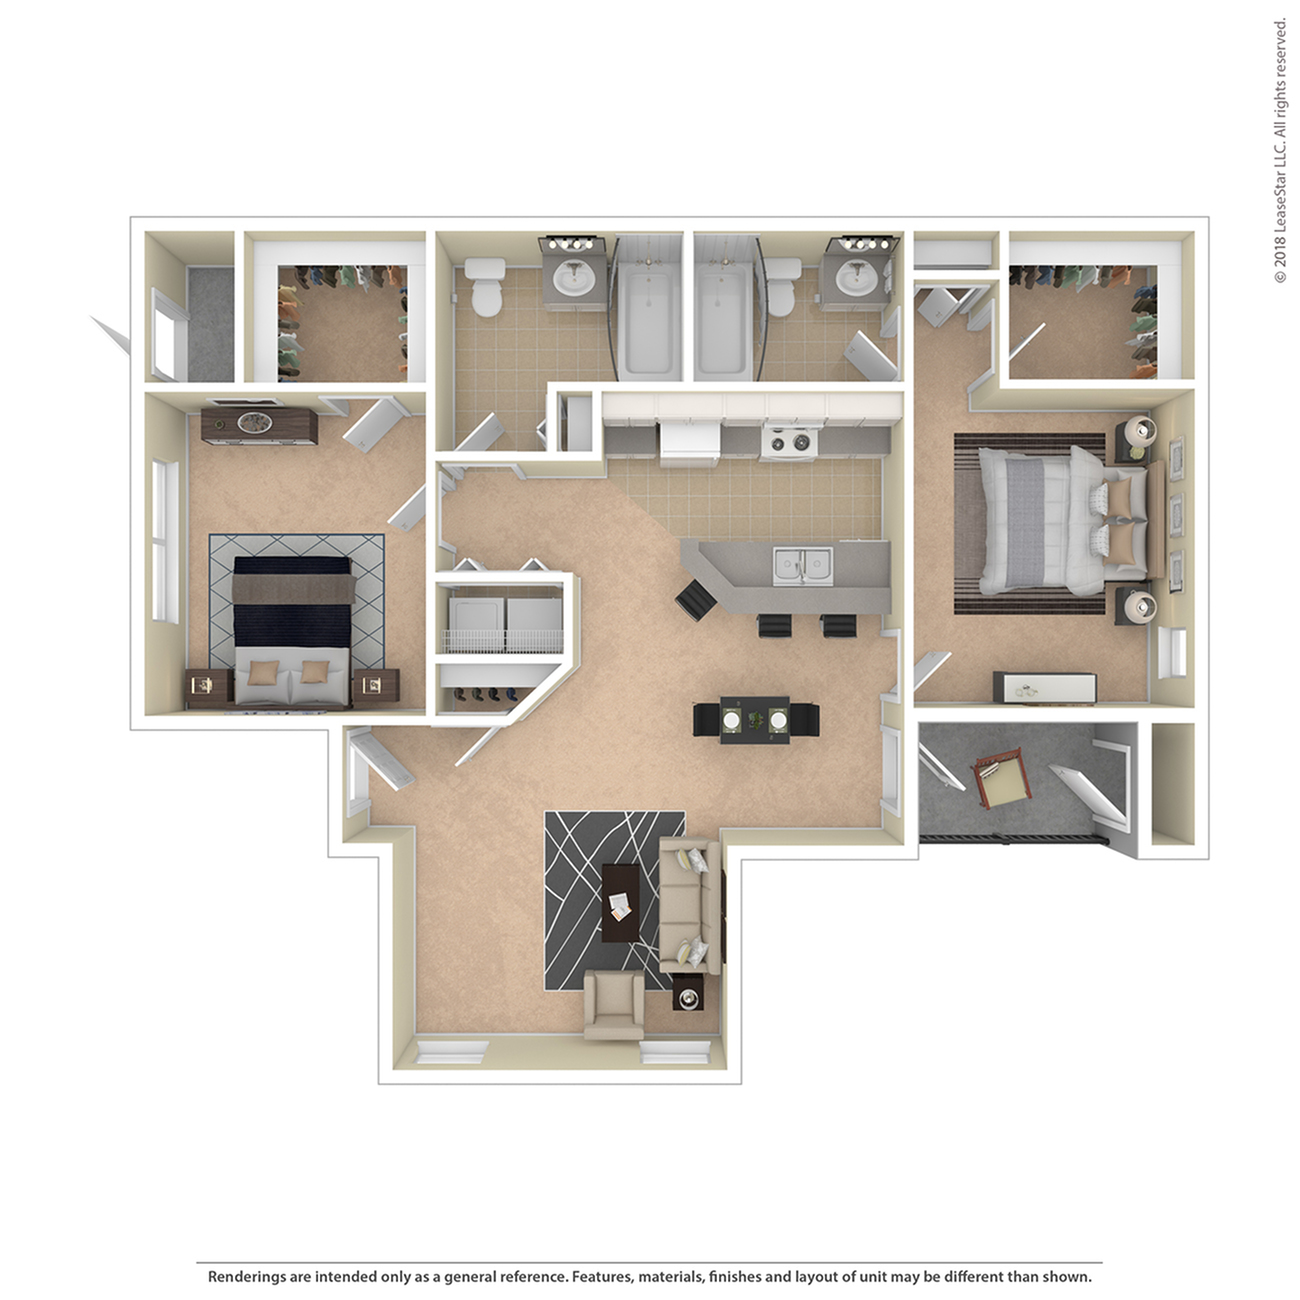 2 Bdrm Floor Plan | Pet Friendly Apartments In Colorado Springs | Willows at Printers Park